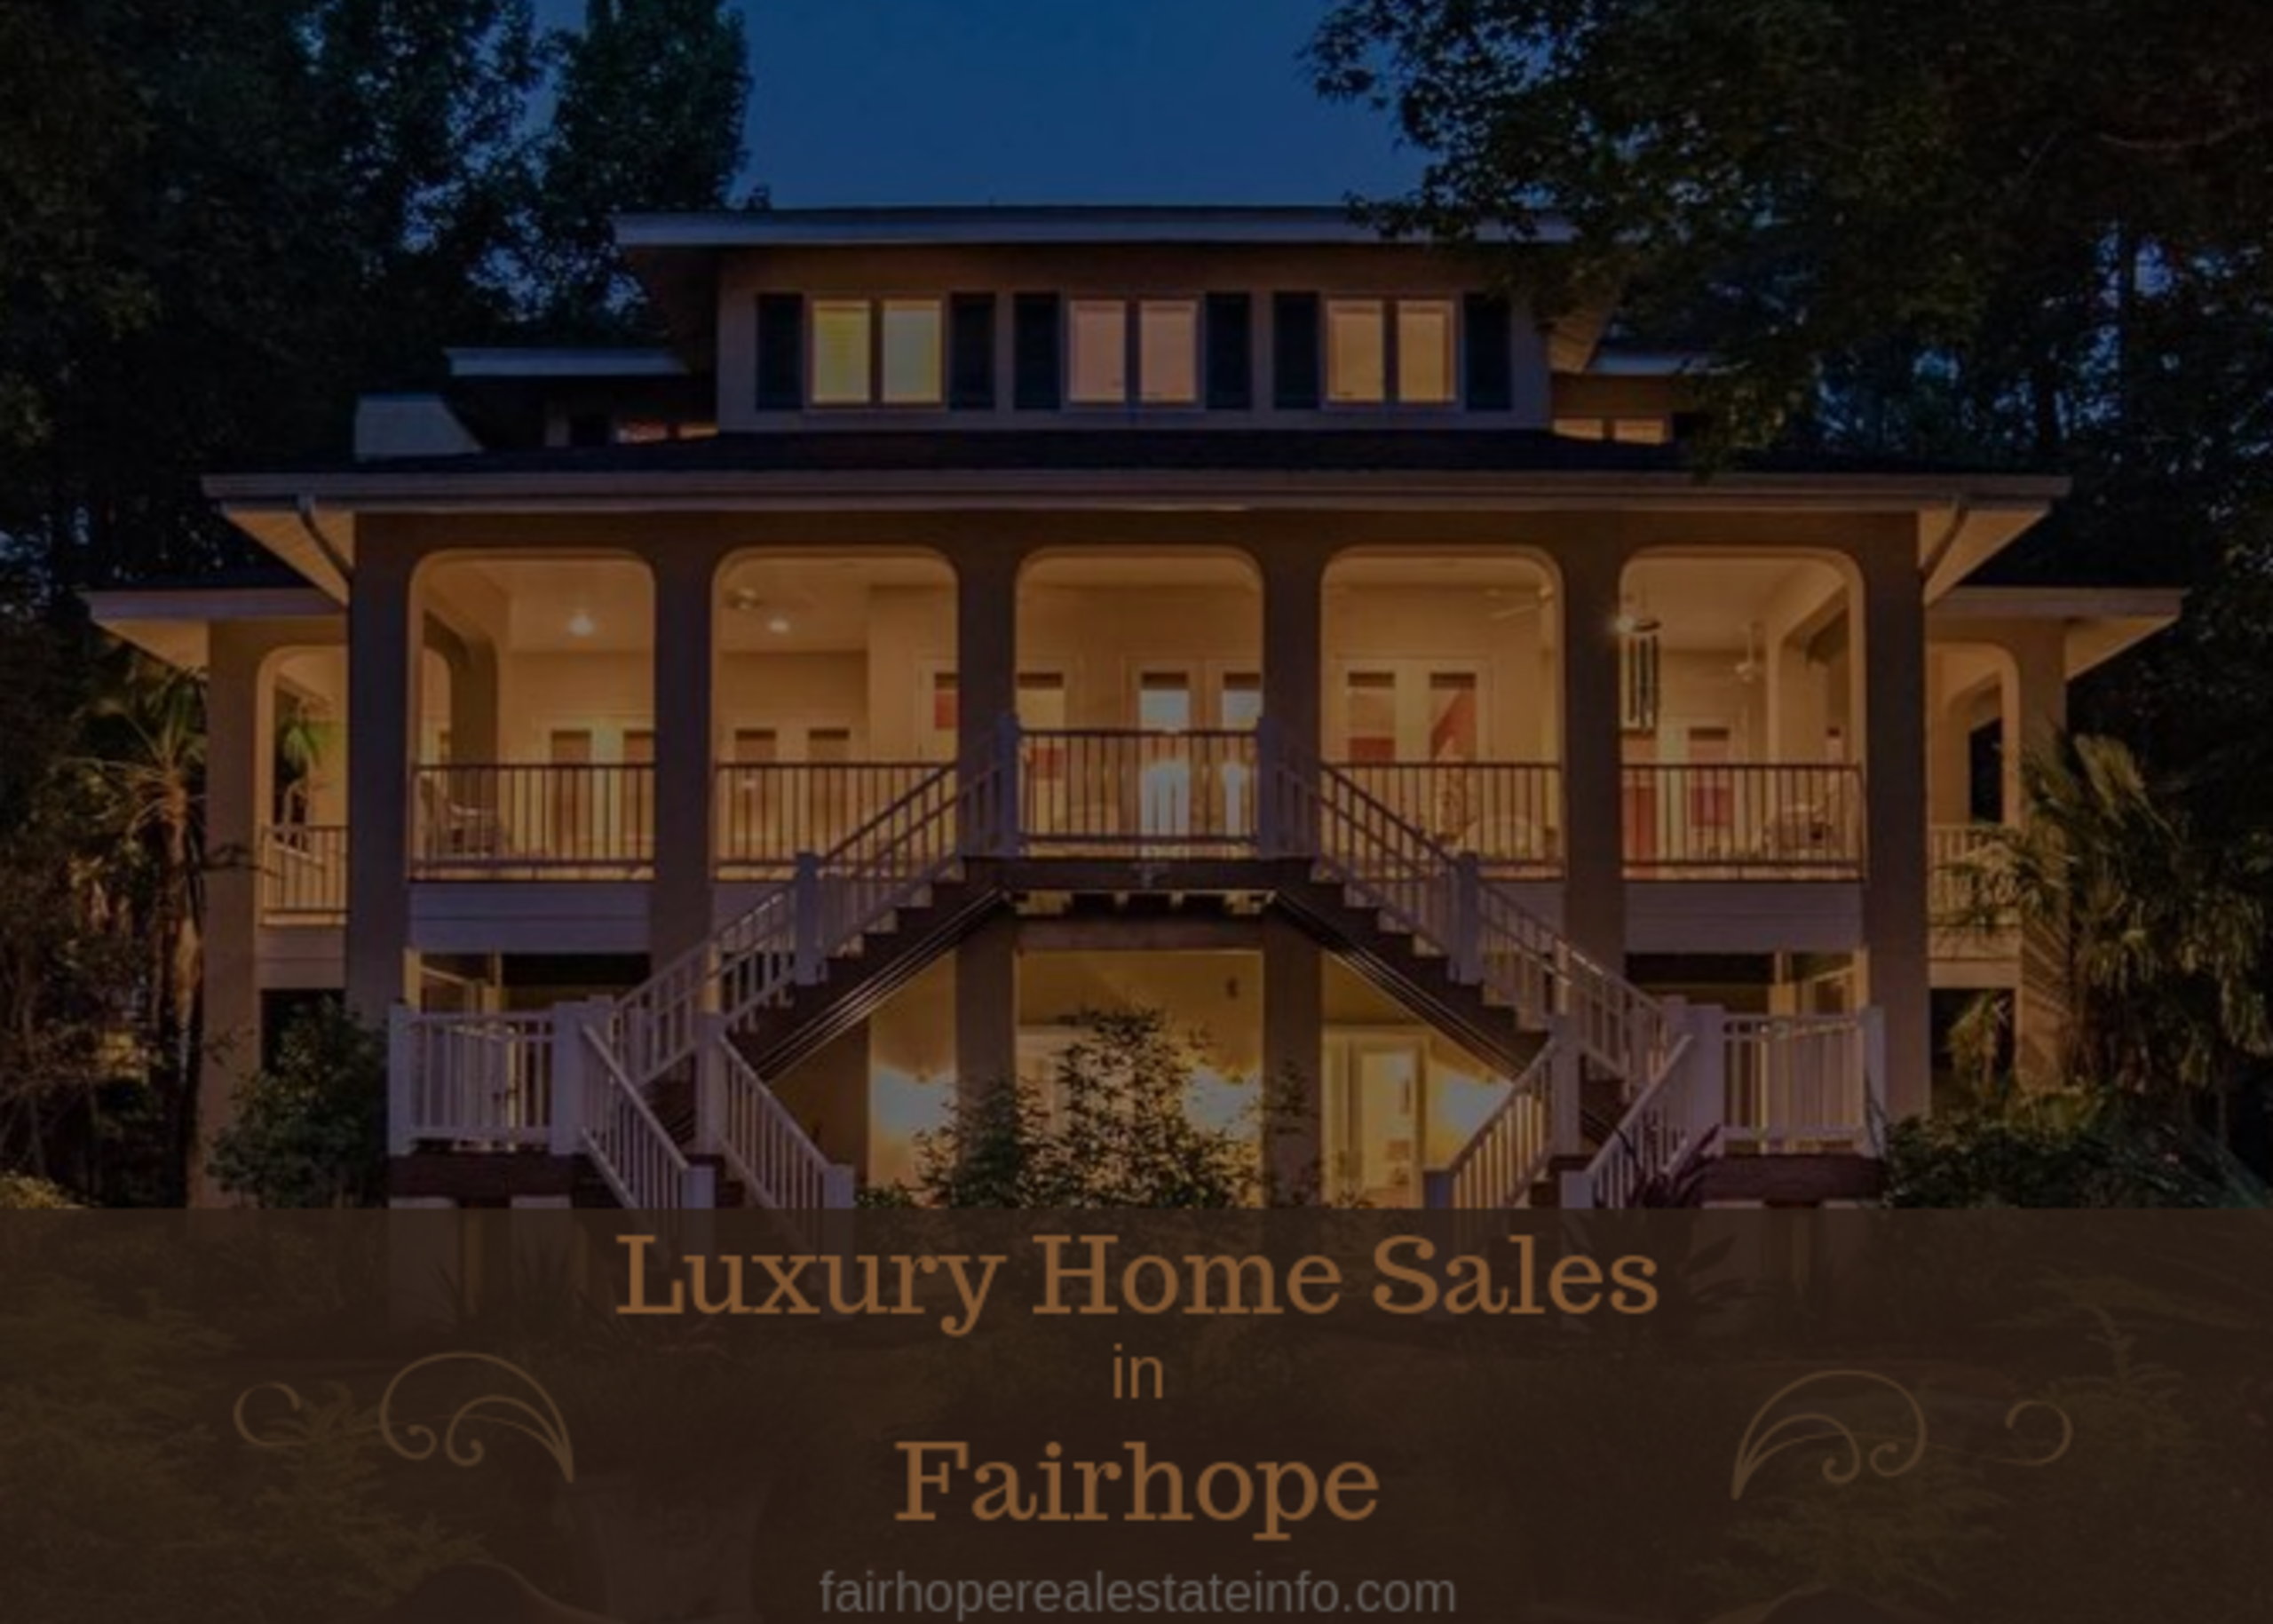 Luxury Home Sales in Fairhope – Sept 2019